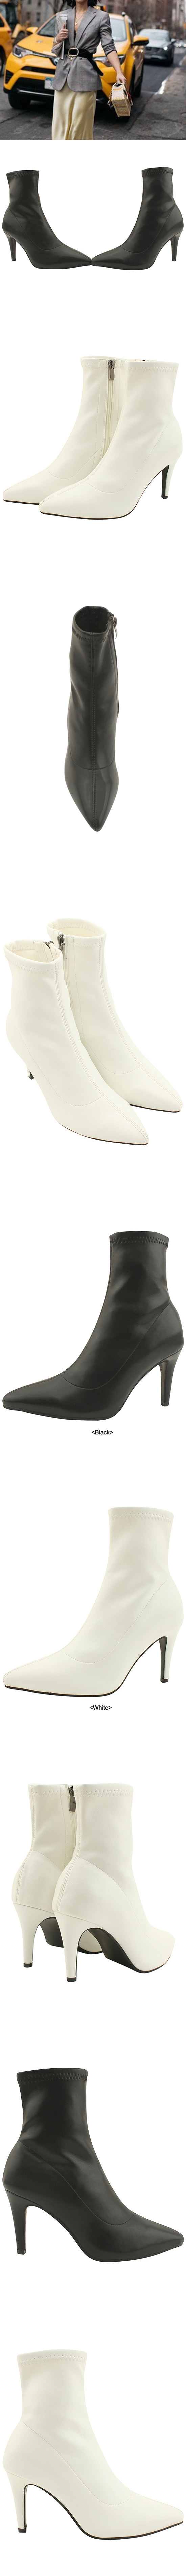 Span Stiletto High Heel Ankle Boots Black